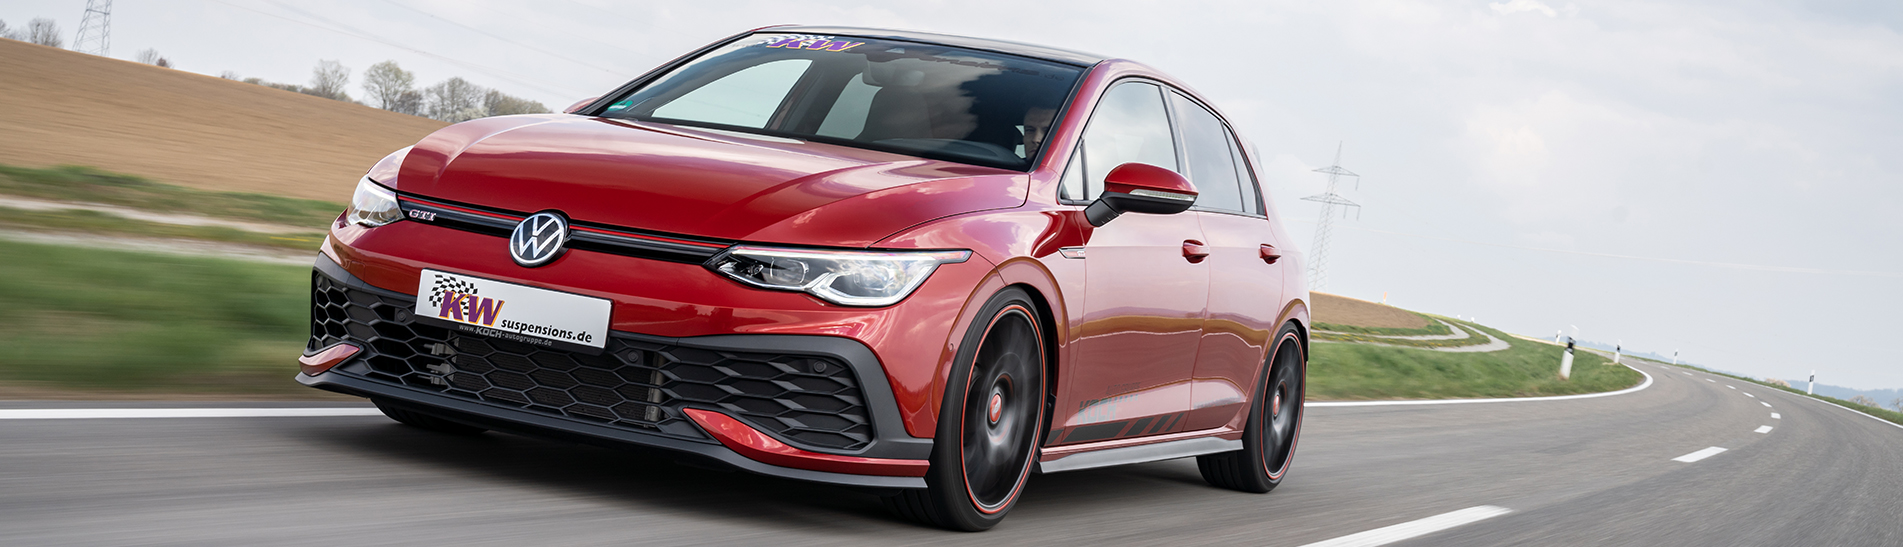 Maximum Stance and increased driving dynamics for the latest VW Golf GTI.